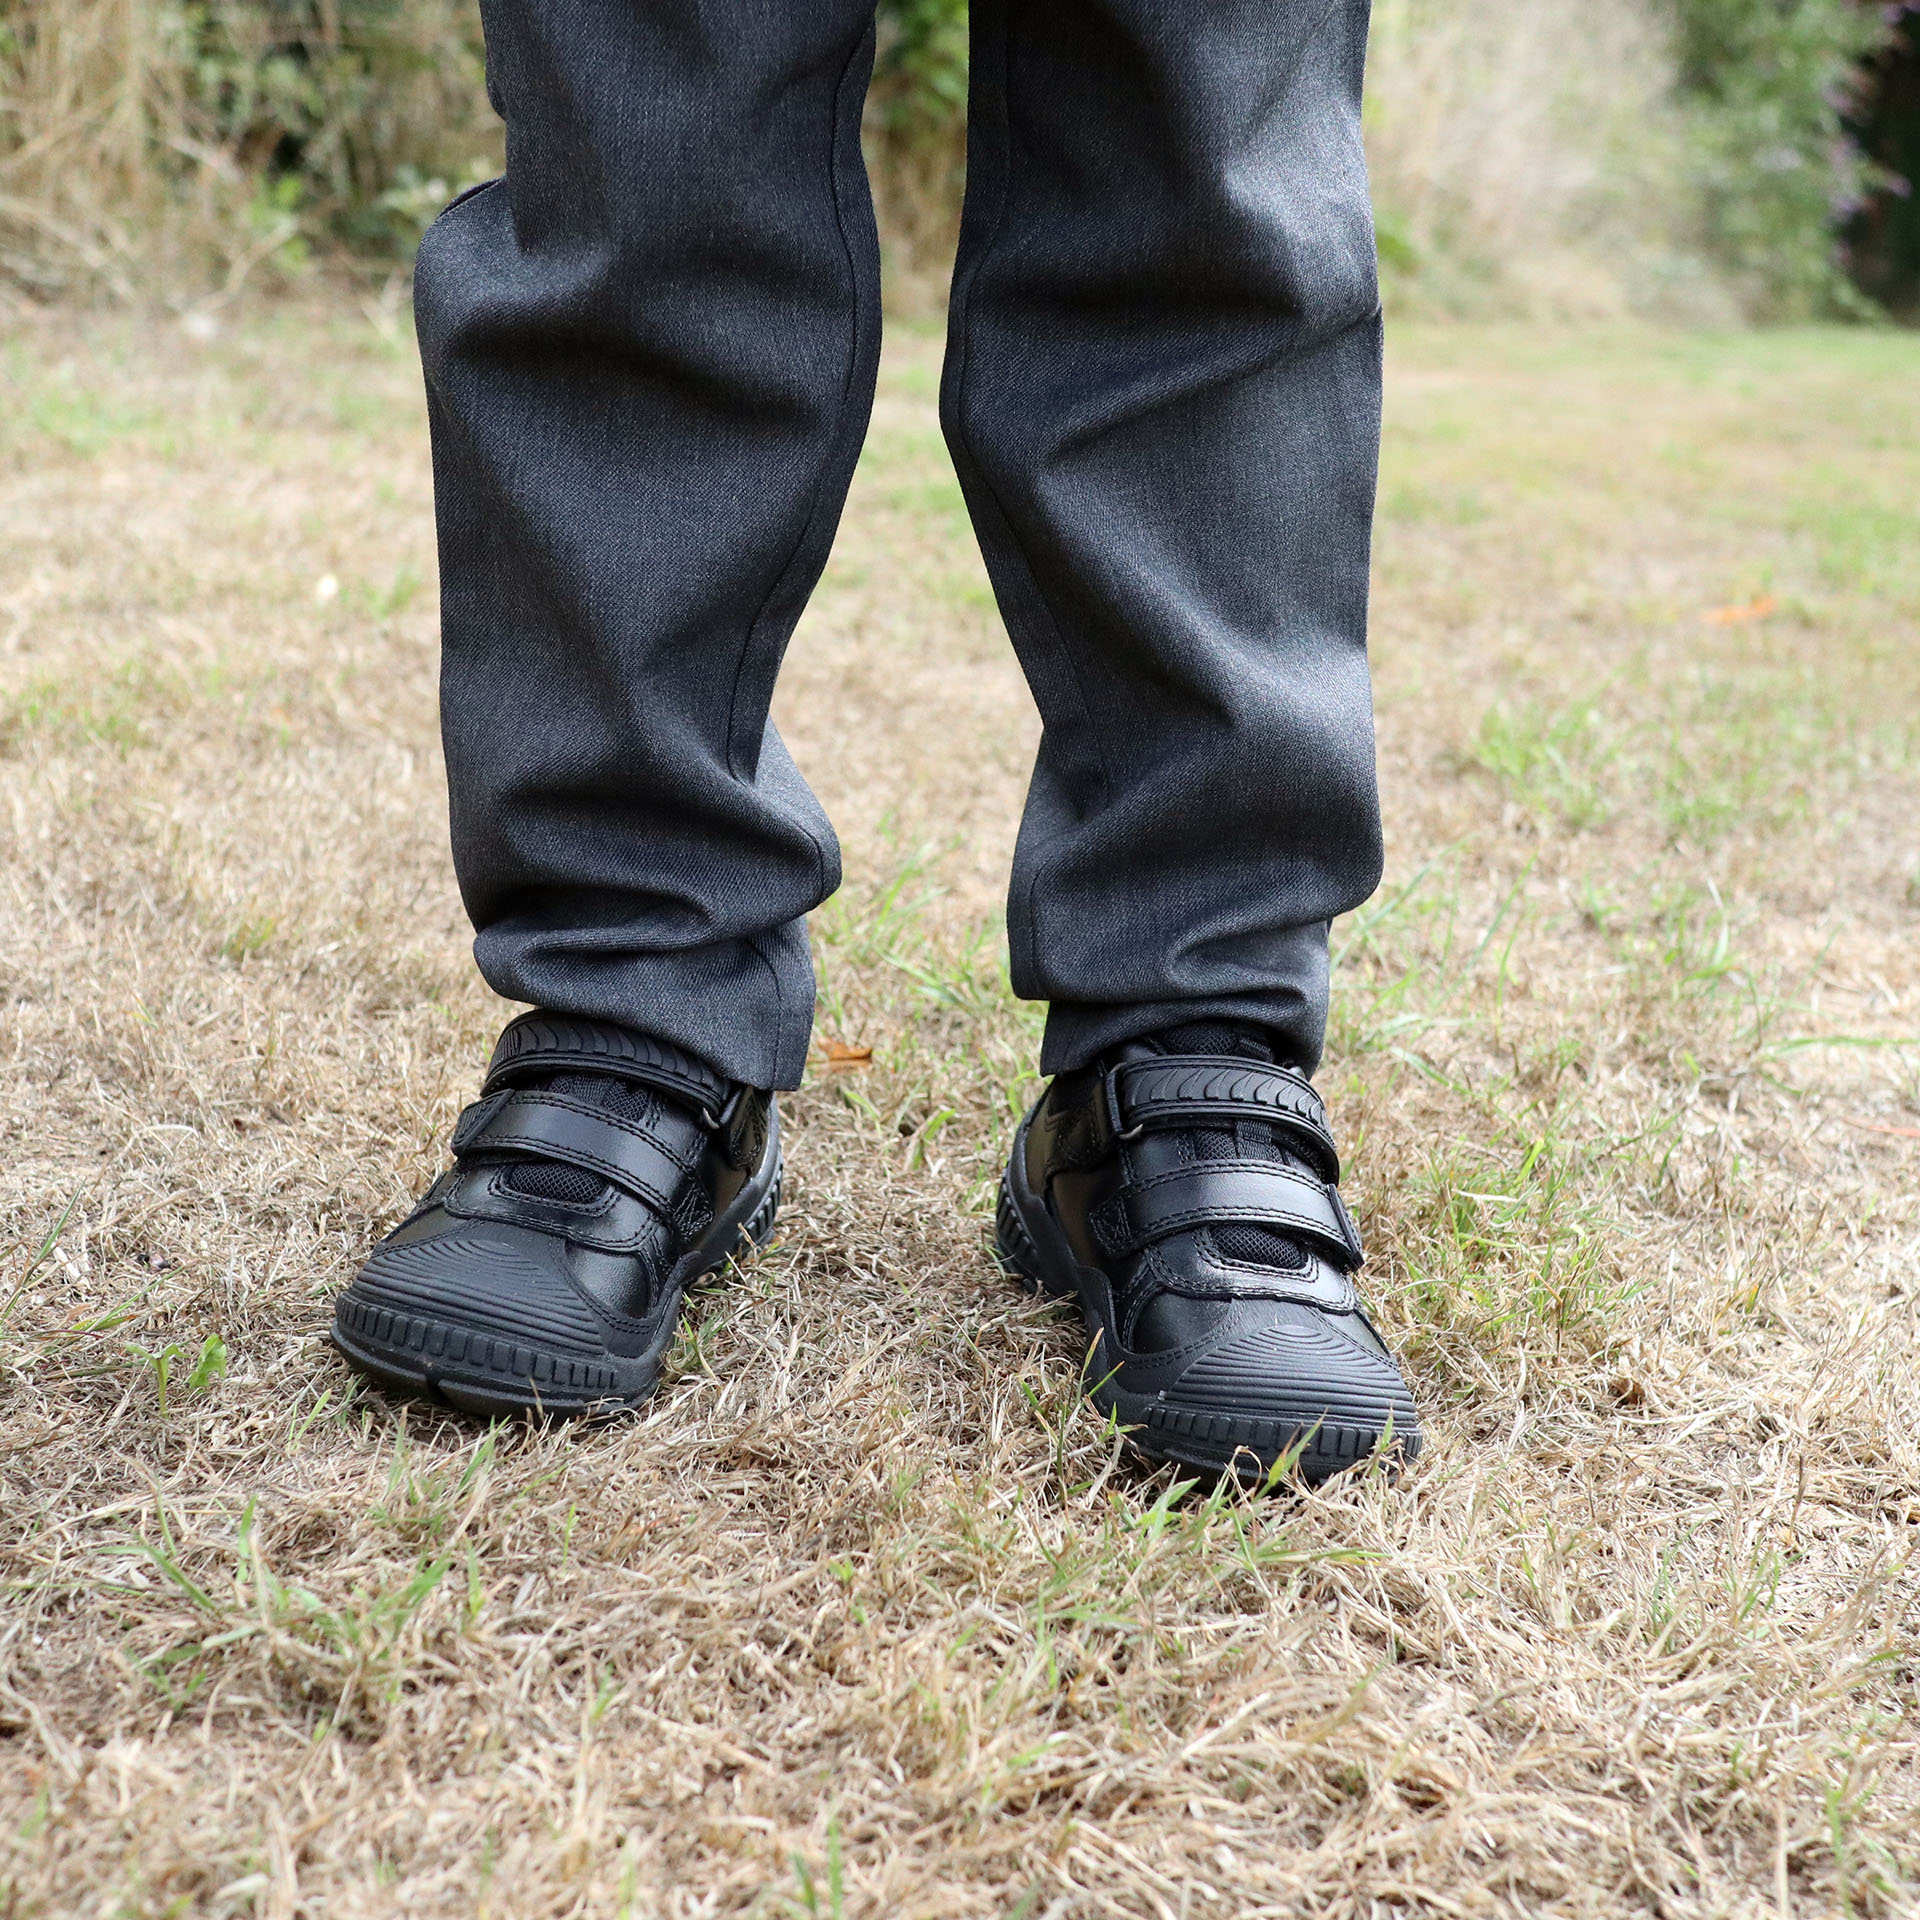 Child wearing school uniform and Start-Rite Extreme school shoes